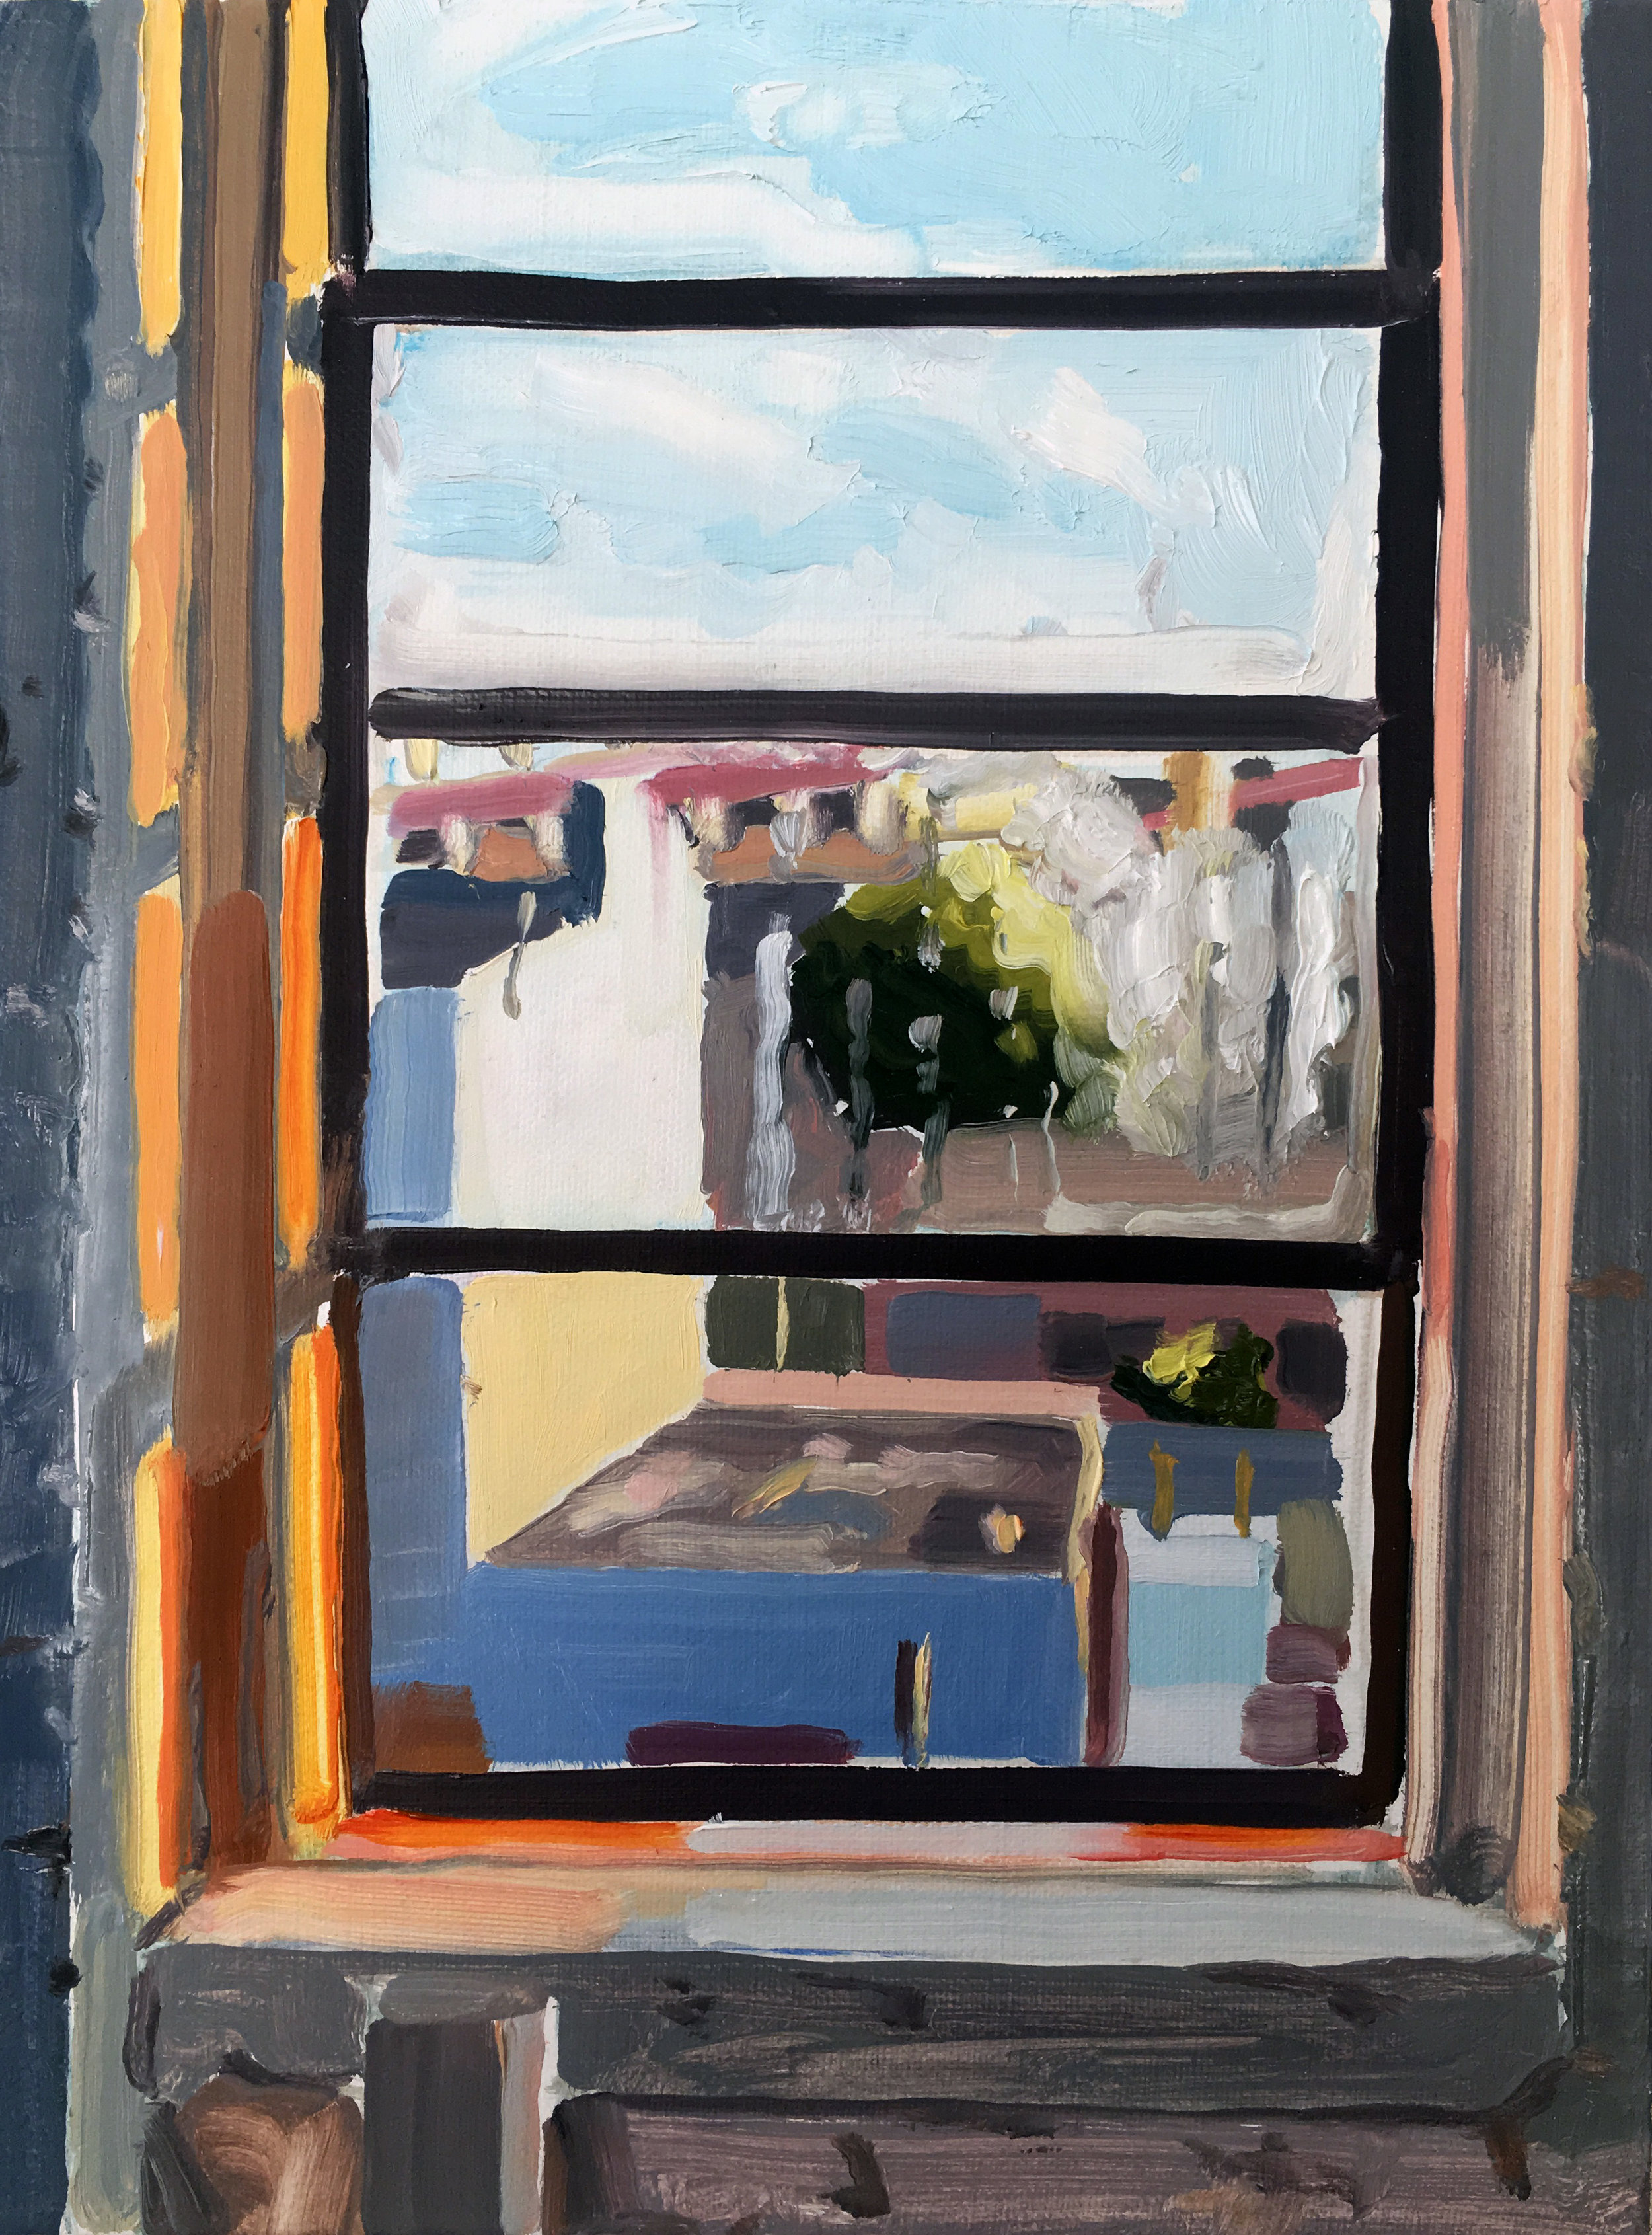 Day Window (8/23), 2017, oil on linen,12 x 9 inches